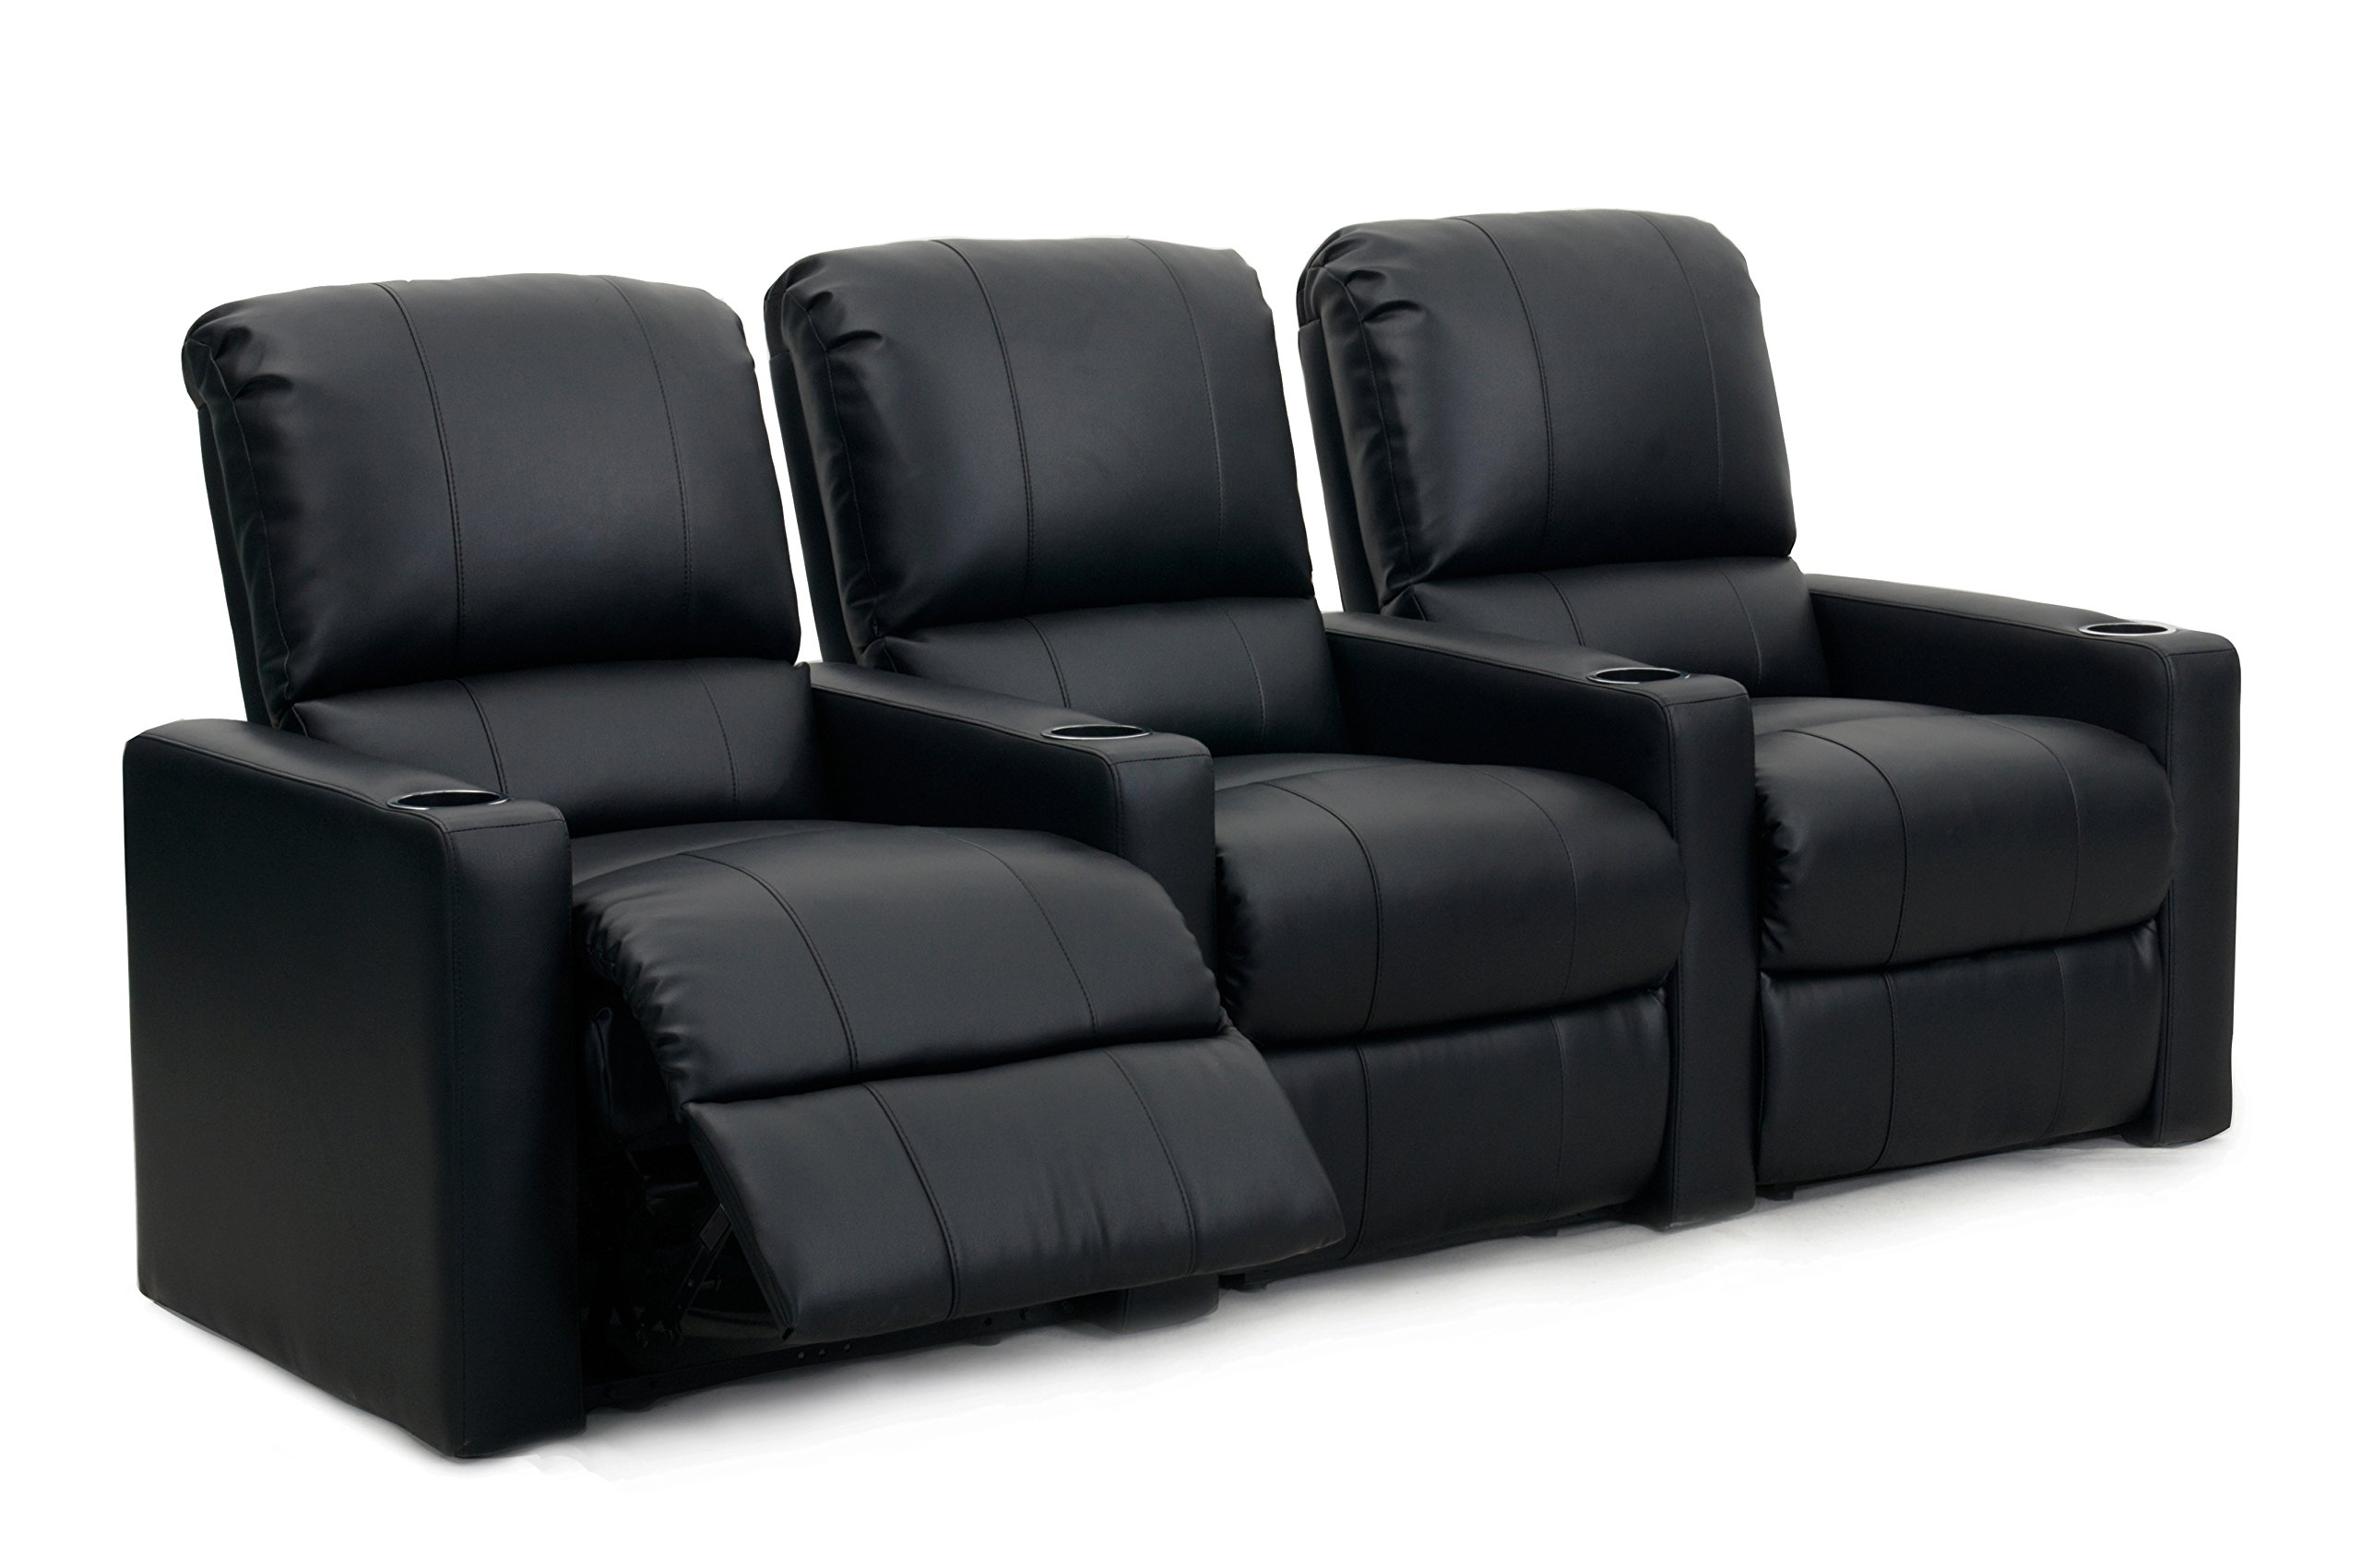 Octane Seating R3SM-BND-BL Octane Charger XS300 Leather Home Theater Recliner Set (Row of 3)